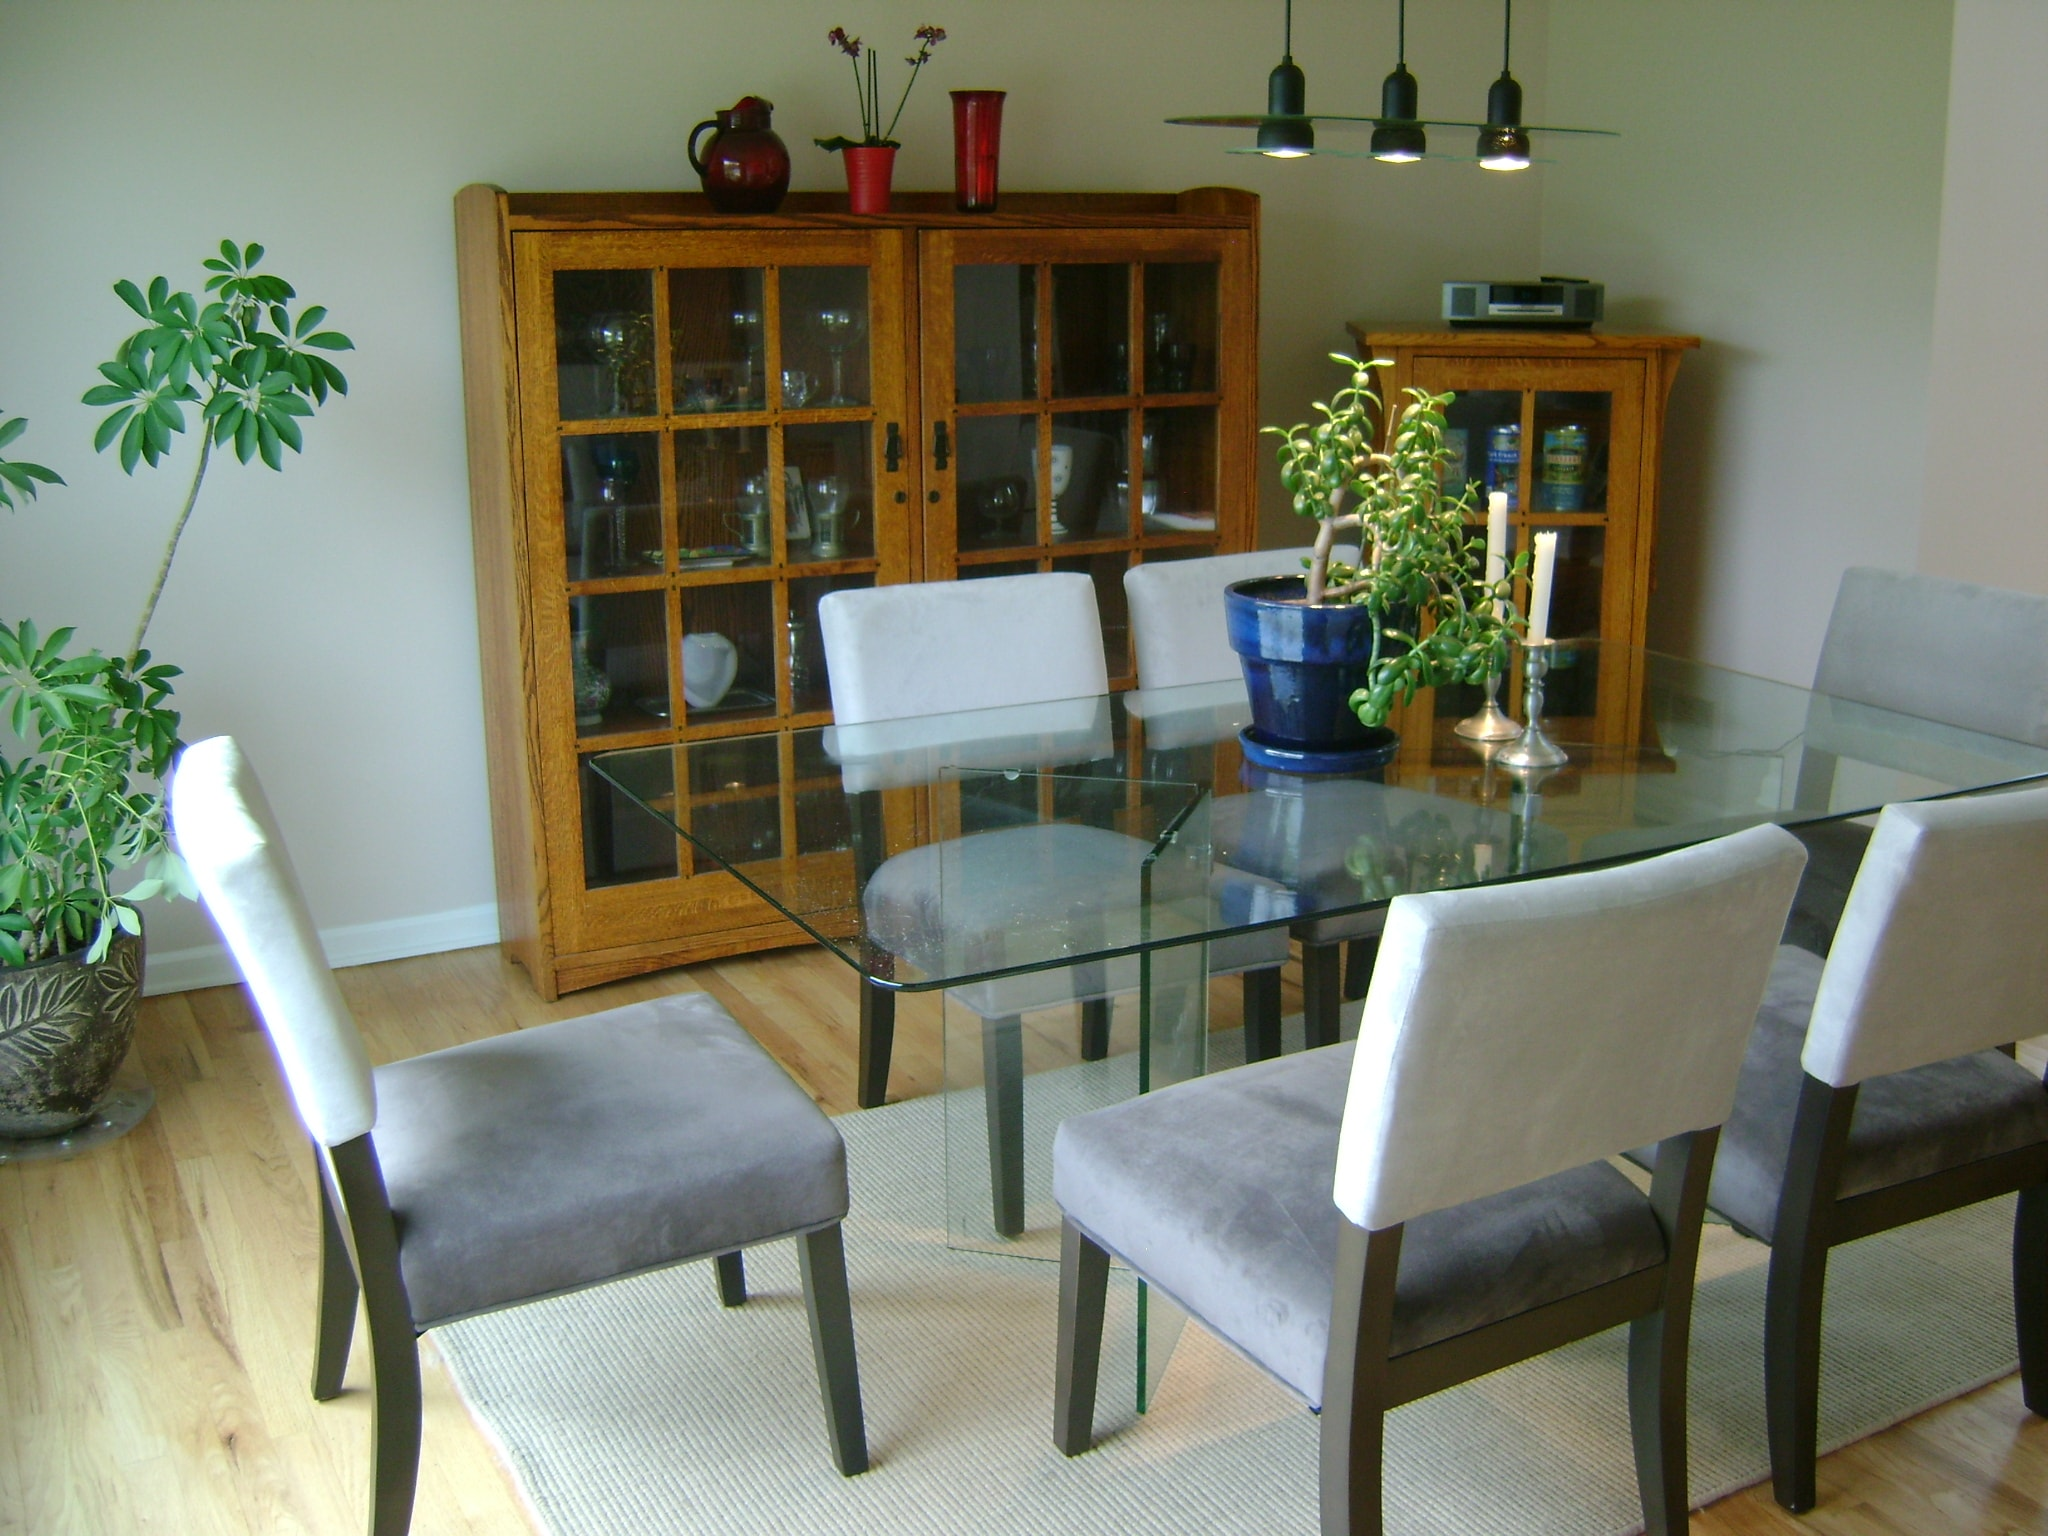 Modern Dining Space - After